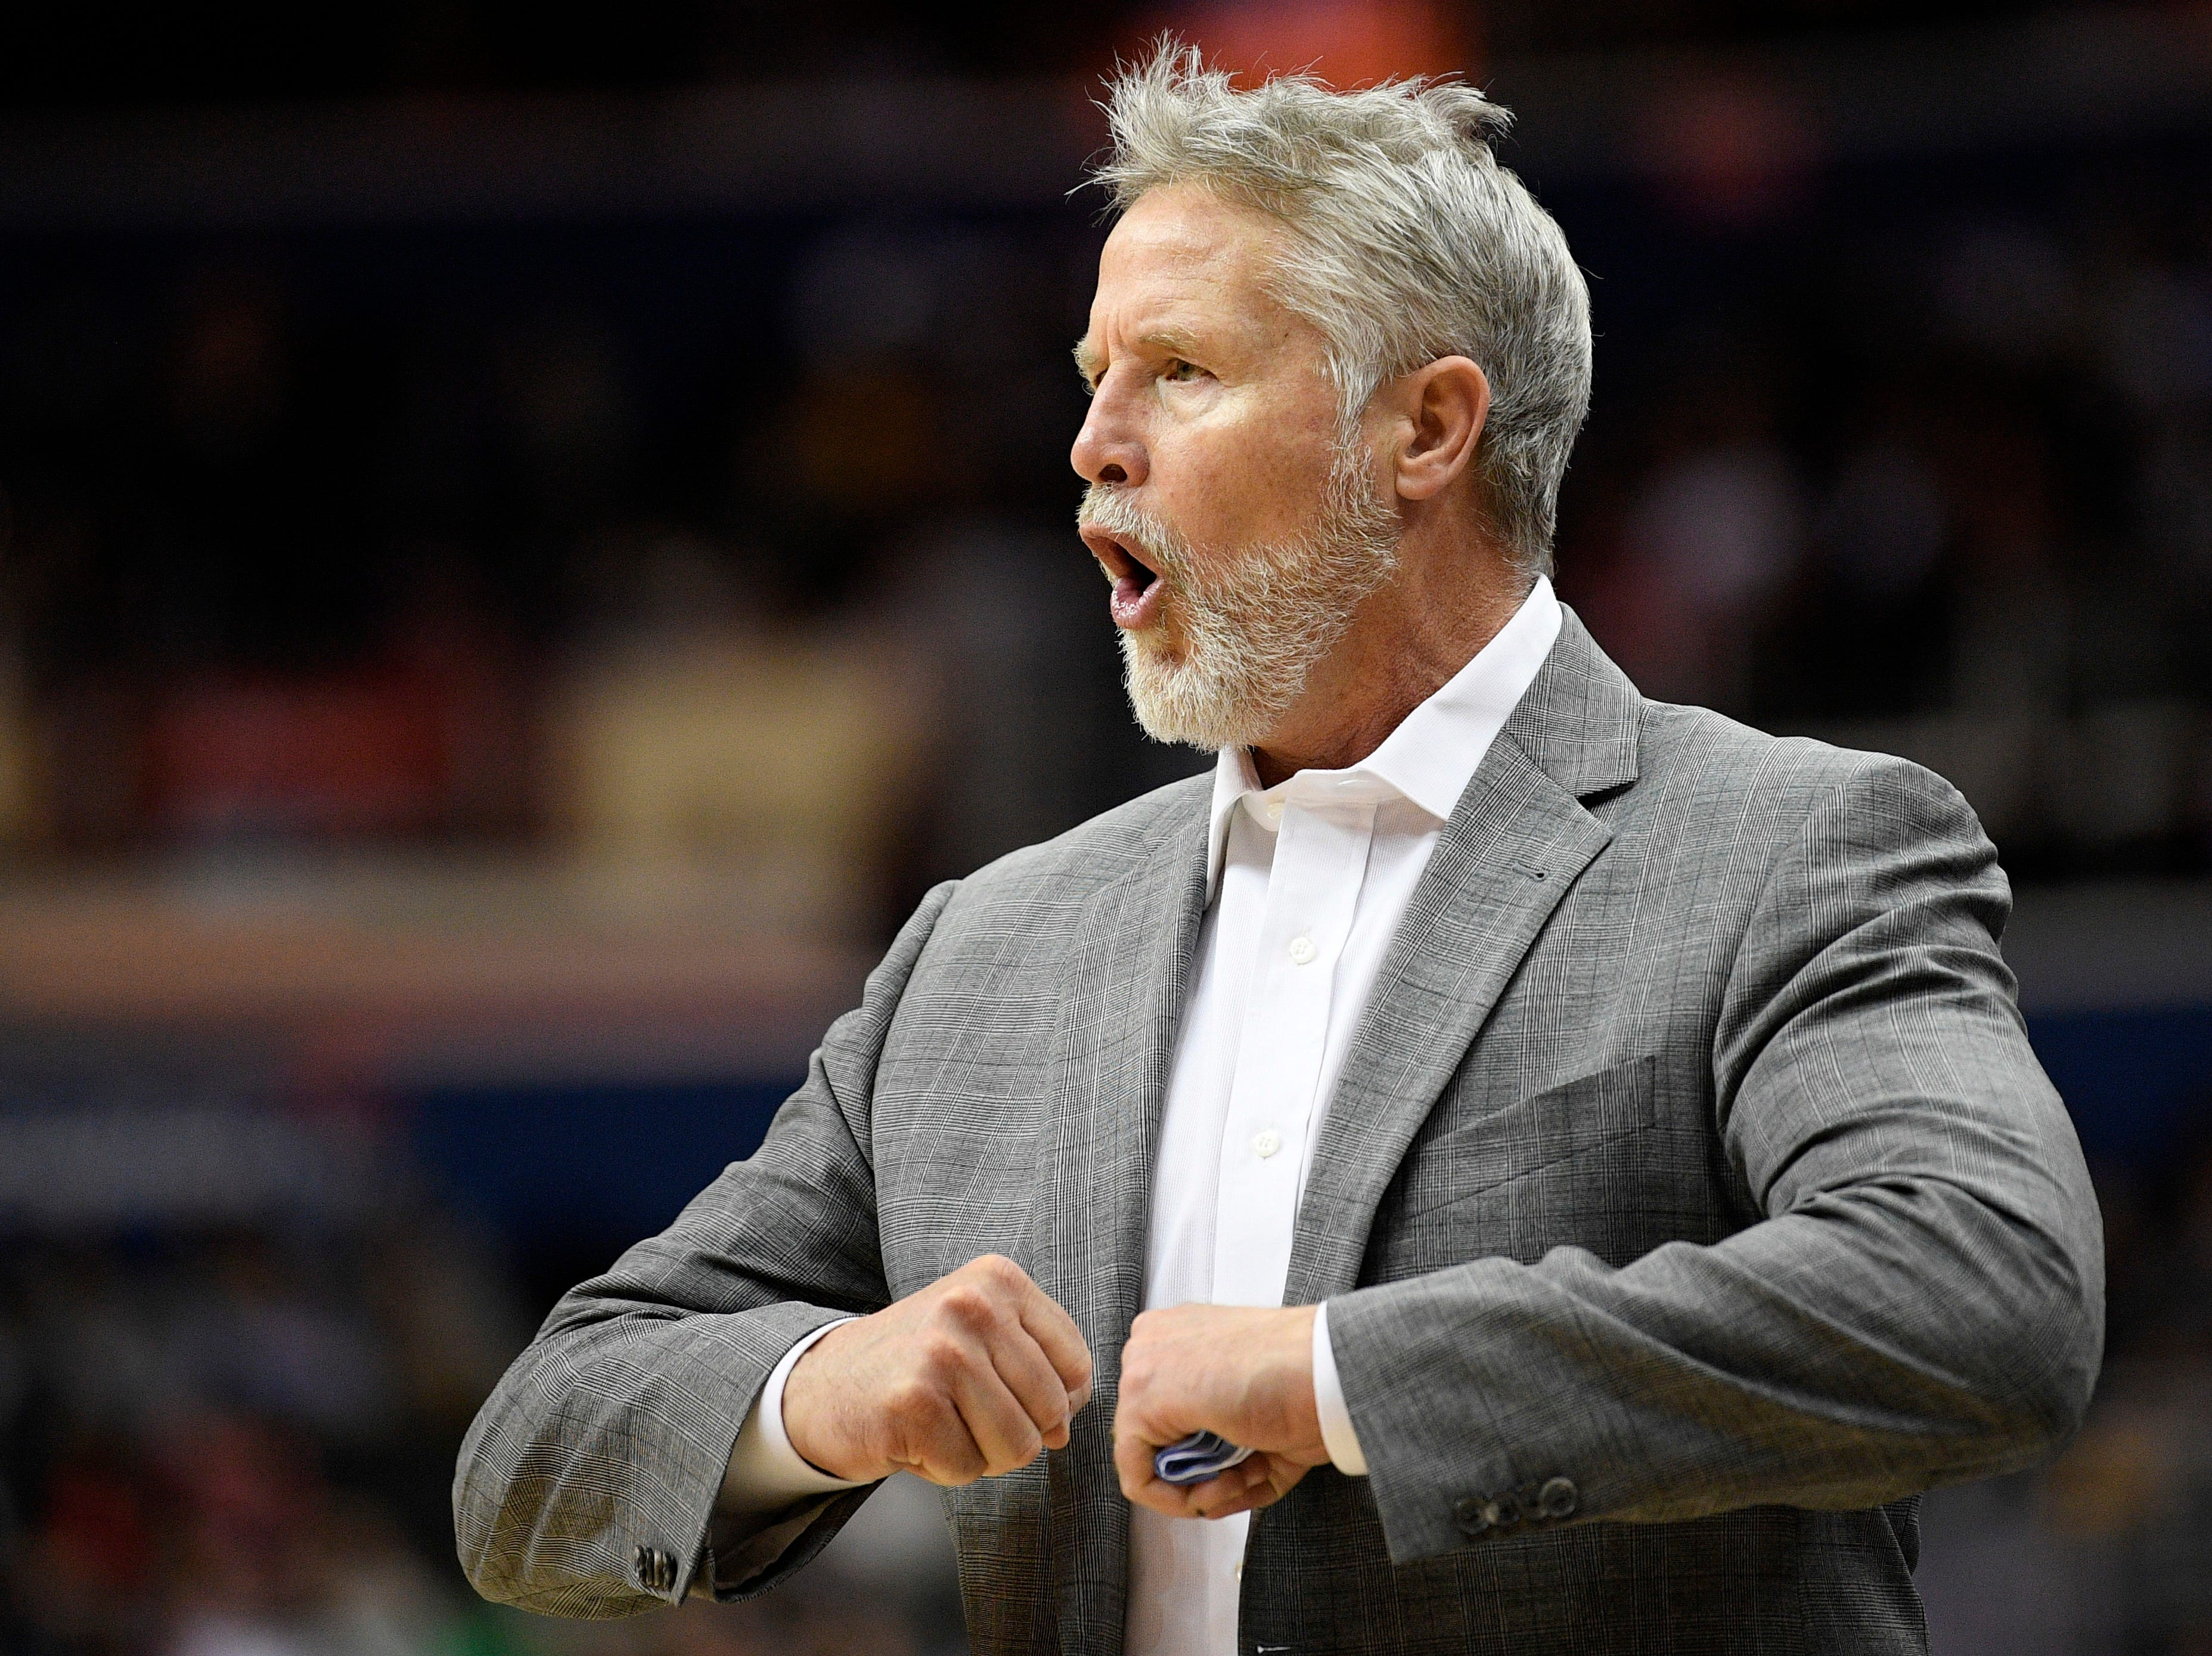 Philadelphia 76ers head coach Brett Brown gestures during the second half of an NBA basketball game against the Washington Wizards, Wednesday, Jan. 9, 2019, in Washington. The Wizards won 123-106. (AP Photo/Nick Wass)